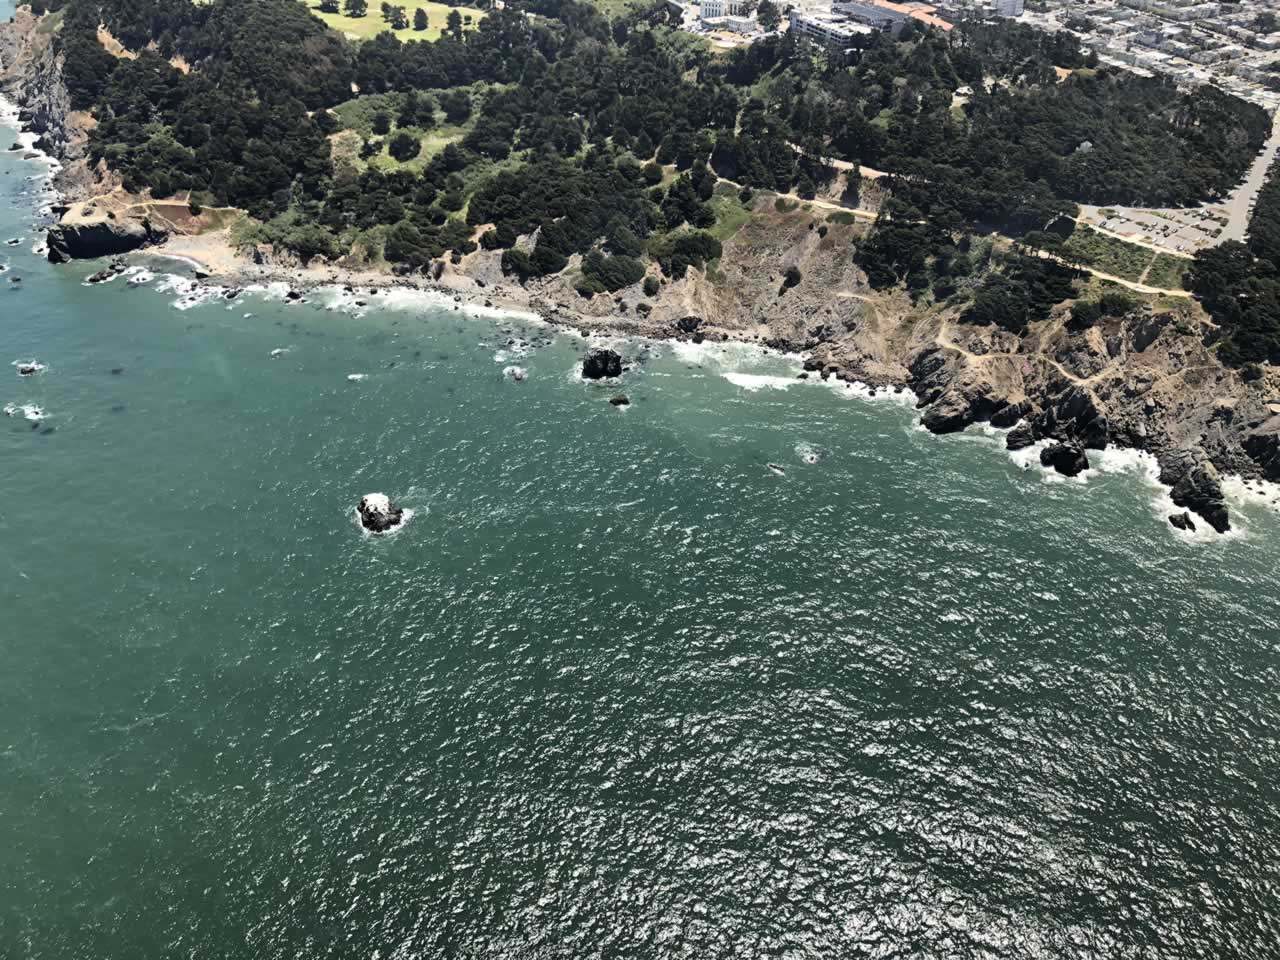 "<div class=""meta image-caption""><div class=""origin-logo origin-image none""><span>none</span></div><span class=""caption-text"">ABC7's Dion Lim captured these photos while soaring over the Bay Area in the Goodyear Blimp on Friday, June 1, 2018. (KGO-TV)</span></div>"